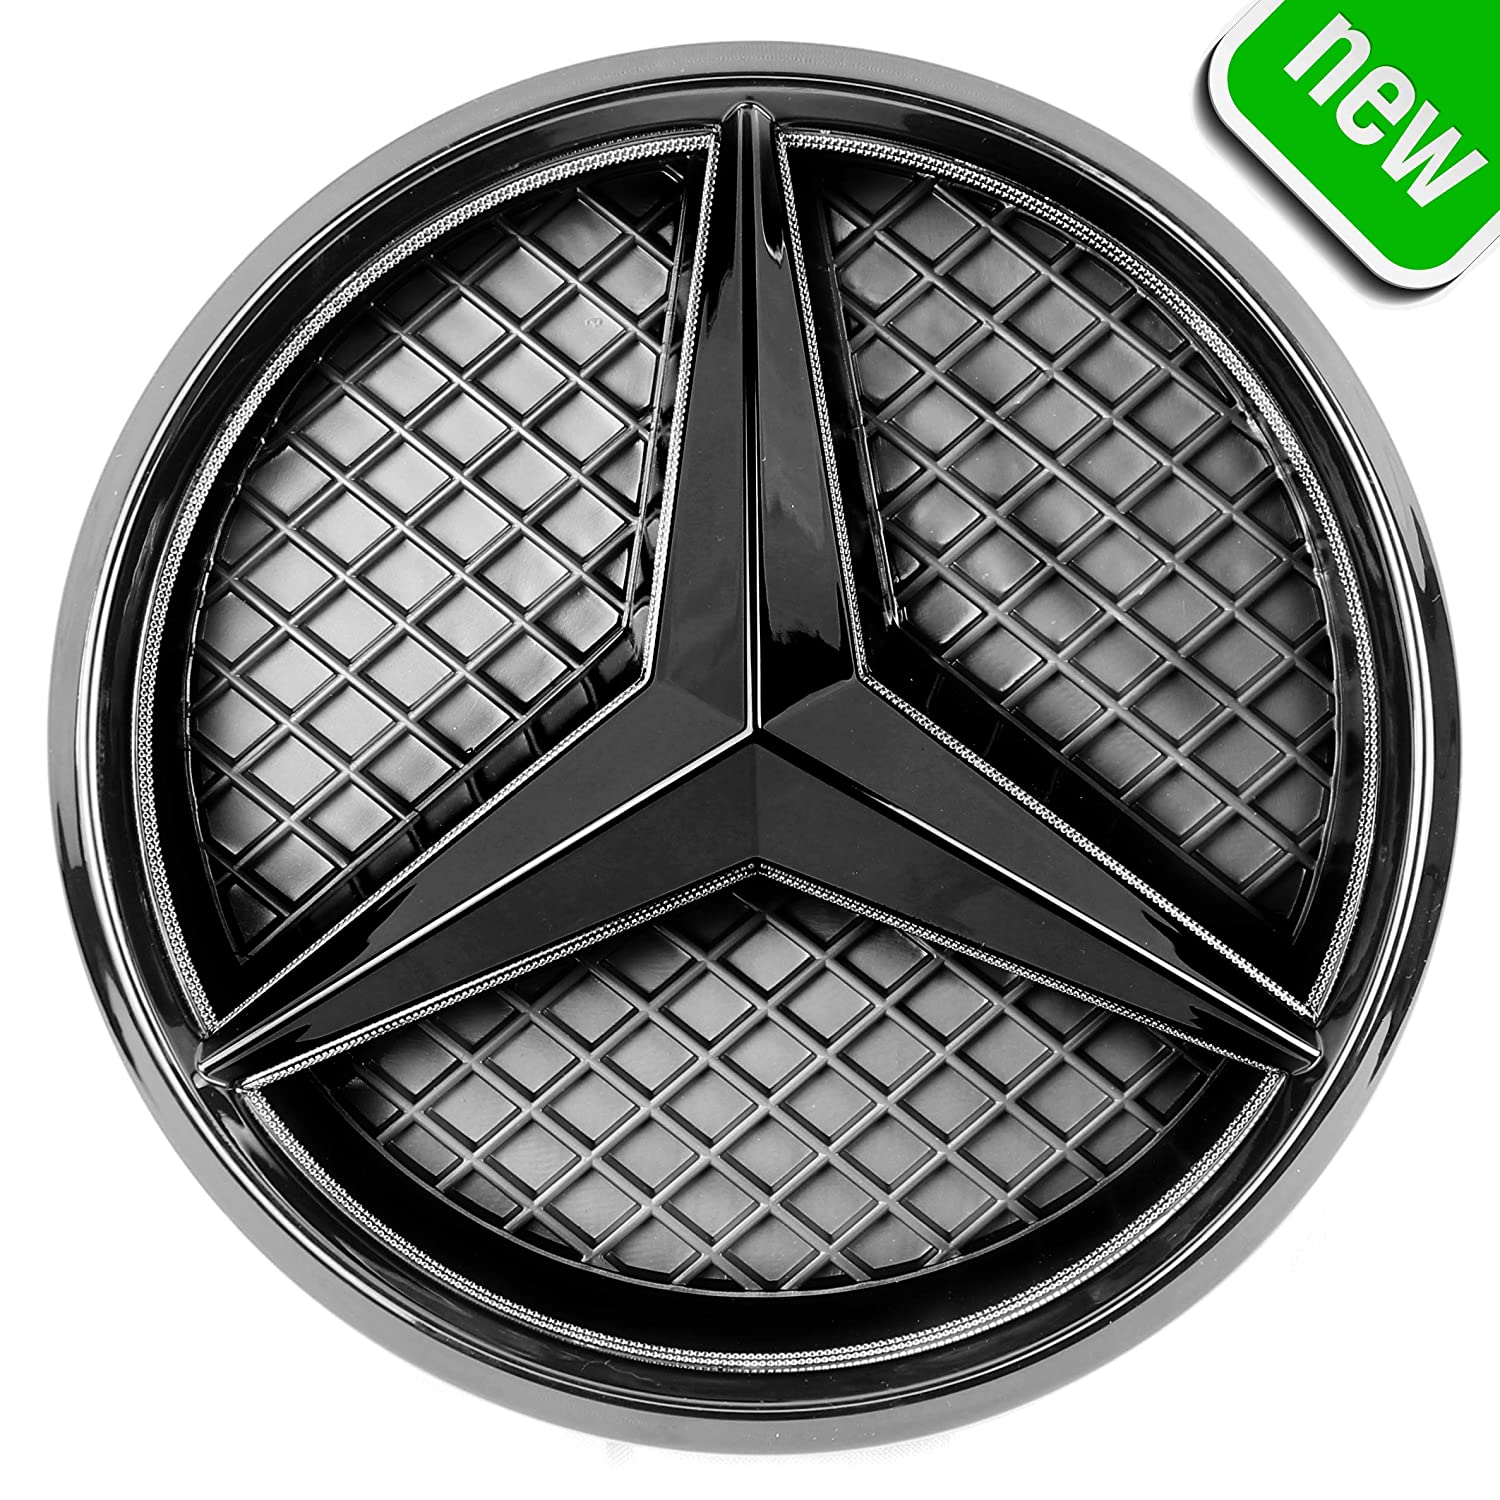 Front Car Grill Badge Auto Illuminated Logo Drive Brighter Glowing Star Lights White DRL Daytime Running Lights JetStyle LED Emblem 2011-2016